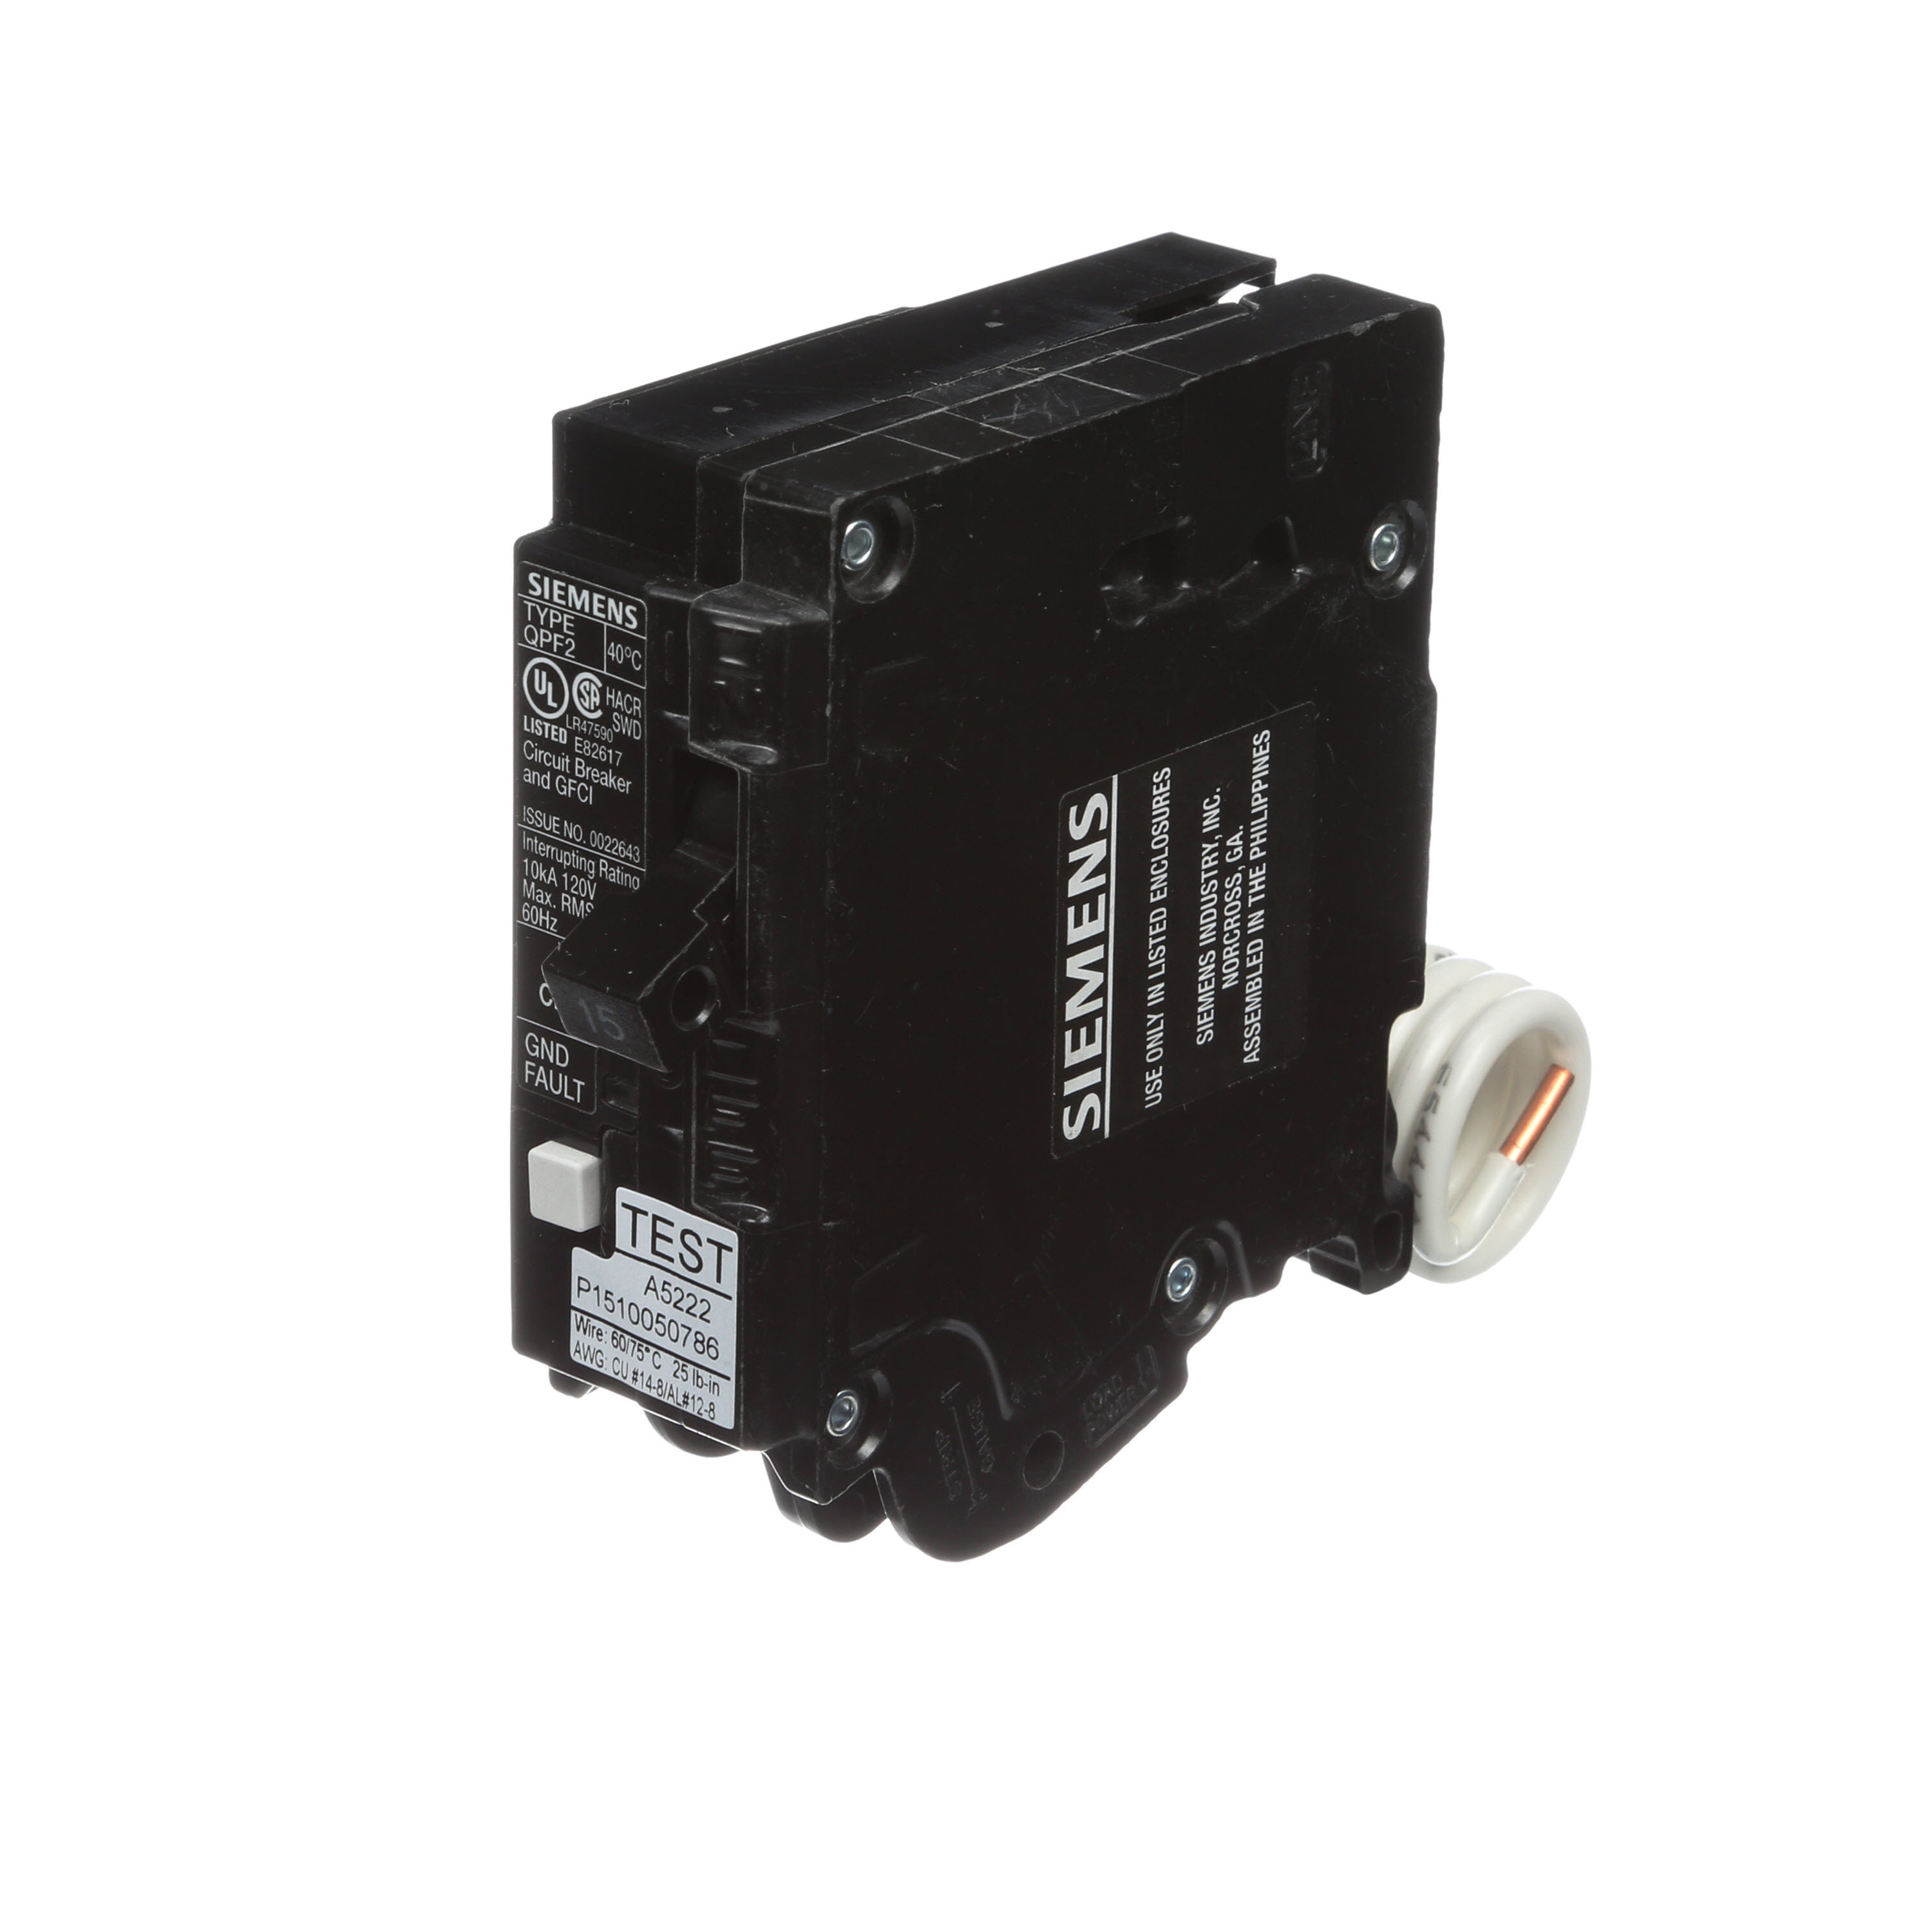 Power Distribution Switch Gear Transformers Protection 12v 250 Circuit Breaker Molded Case 60 Siemens Ground Fault 120 240 Vac 15 A 50 To